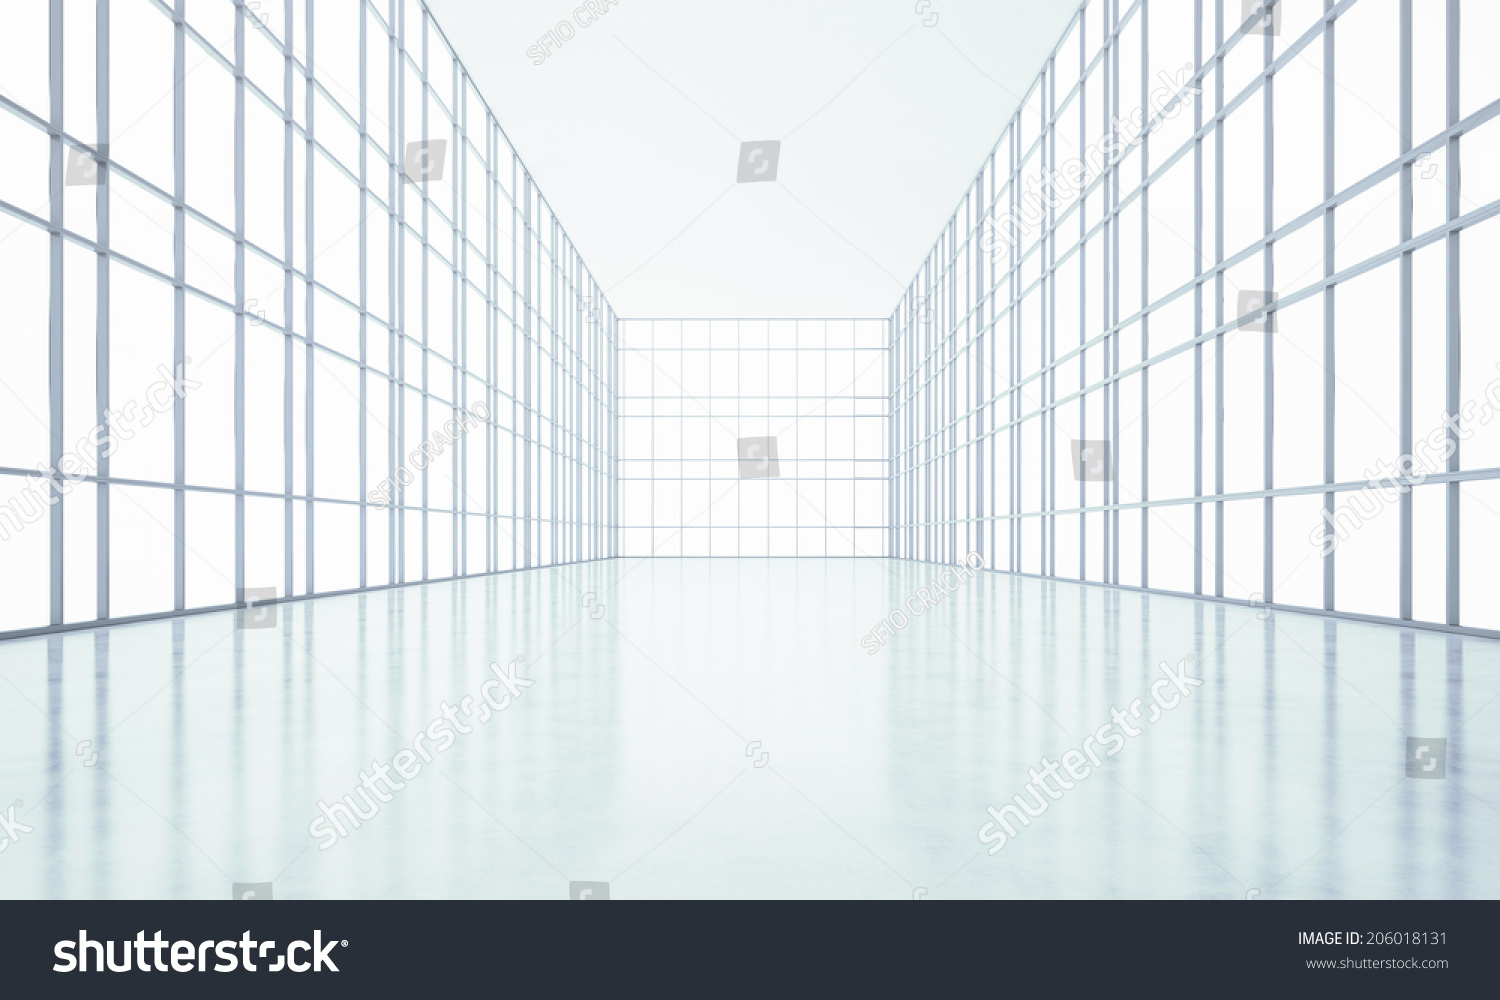 Image result for clear open space